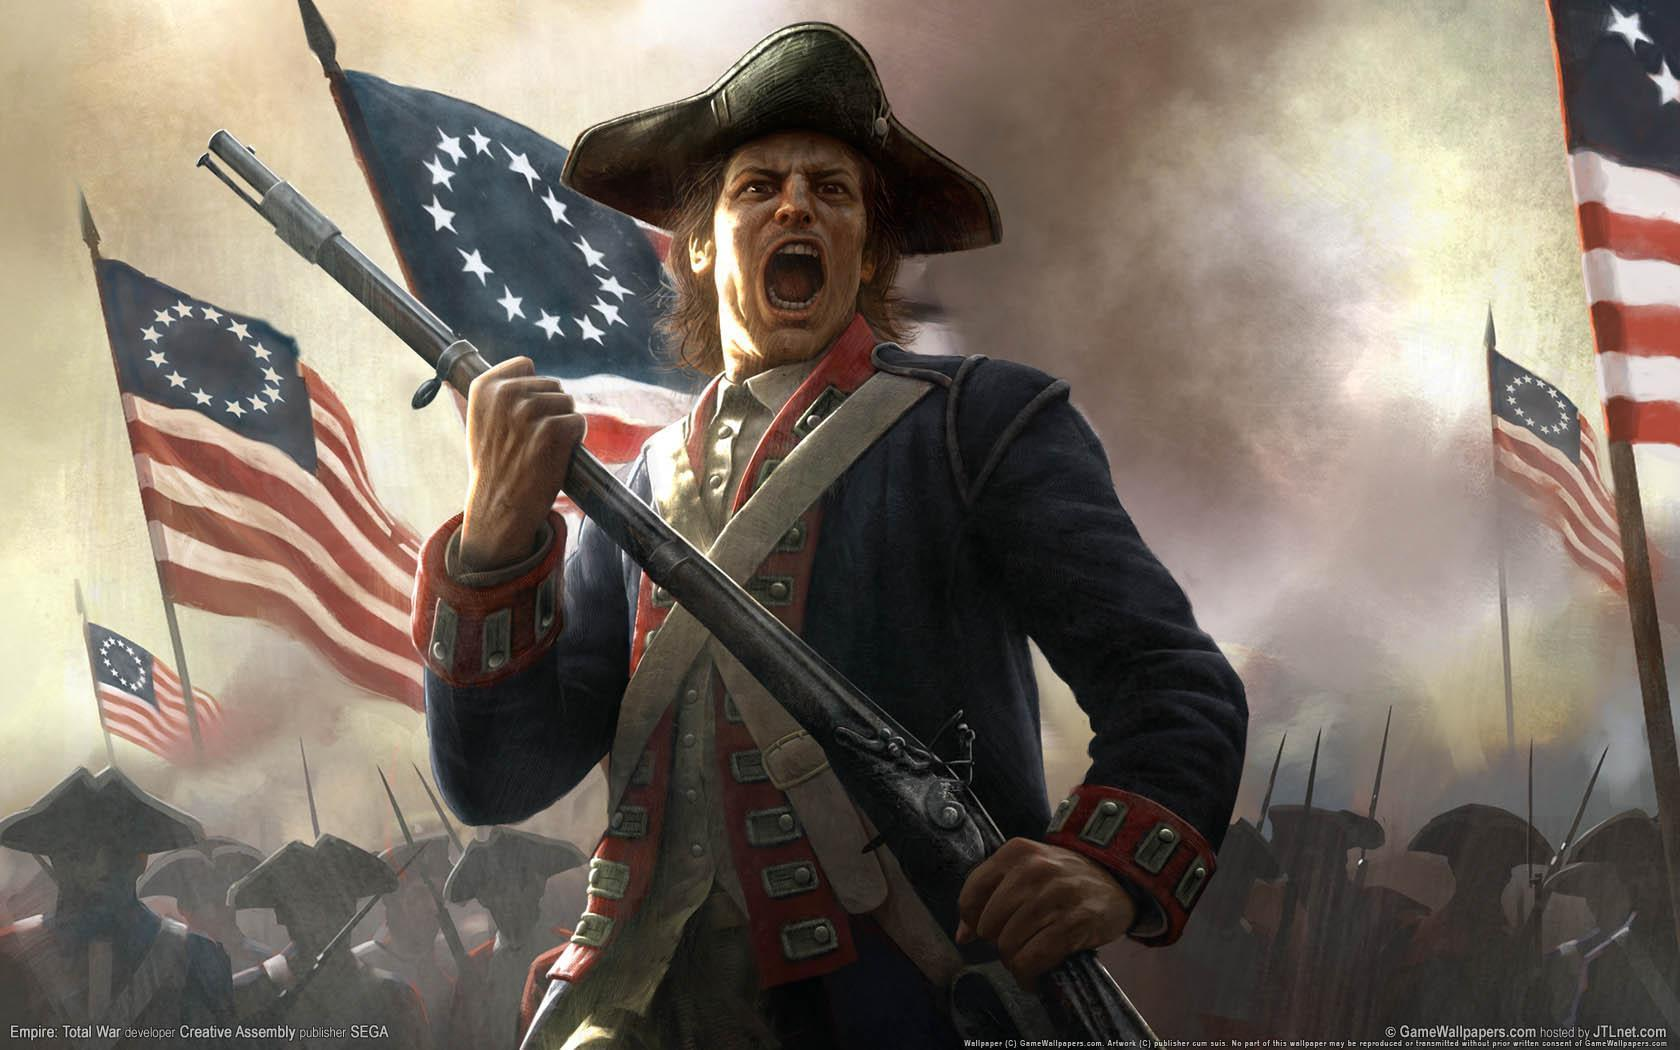 american revolution background info Conflict and revolution 1775 to 1776 an unordered 'shot heard around the world' begins the american revolution a volley of british muskets followed by a charge with bayonets leaves eight americans dead and ten wounded the.